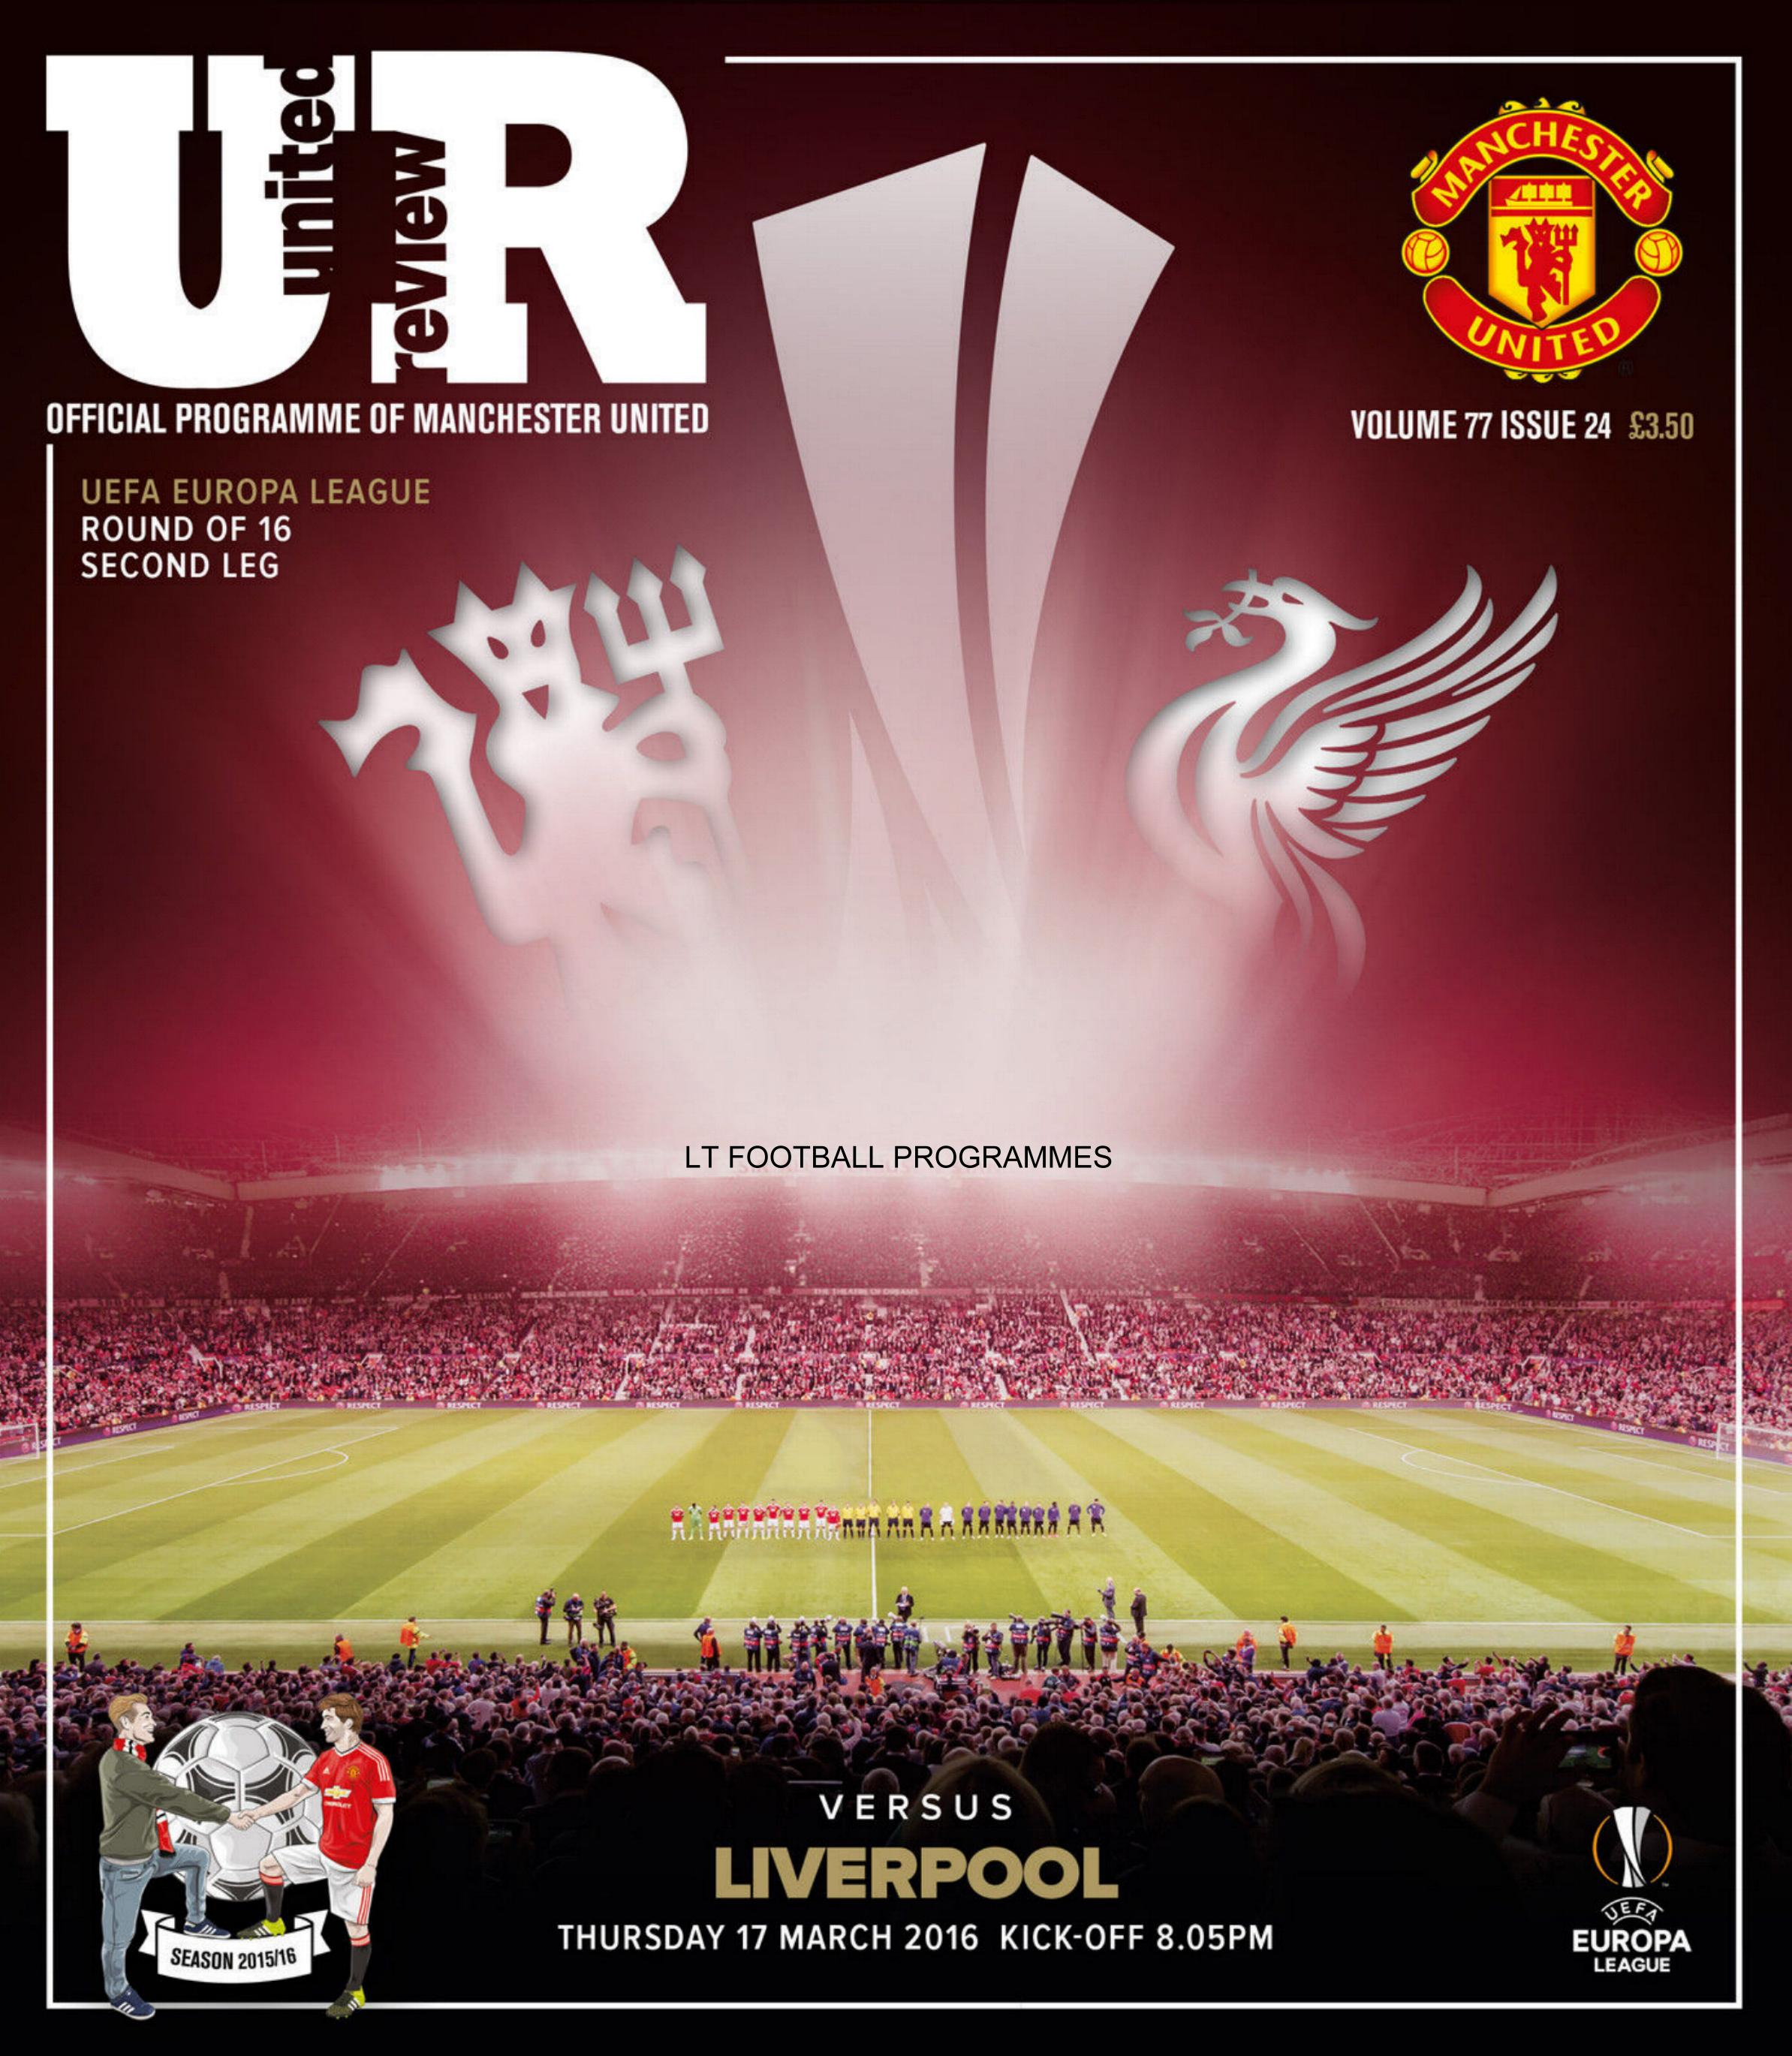 2015/16 EUROPA LEAGUE - MAN UTD v LIVERPOOL